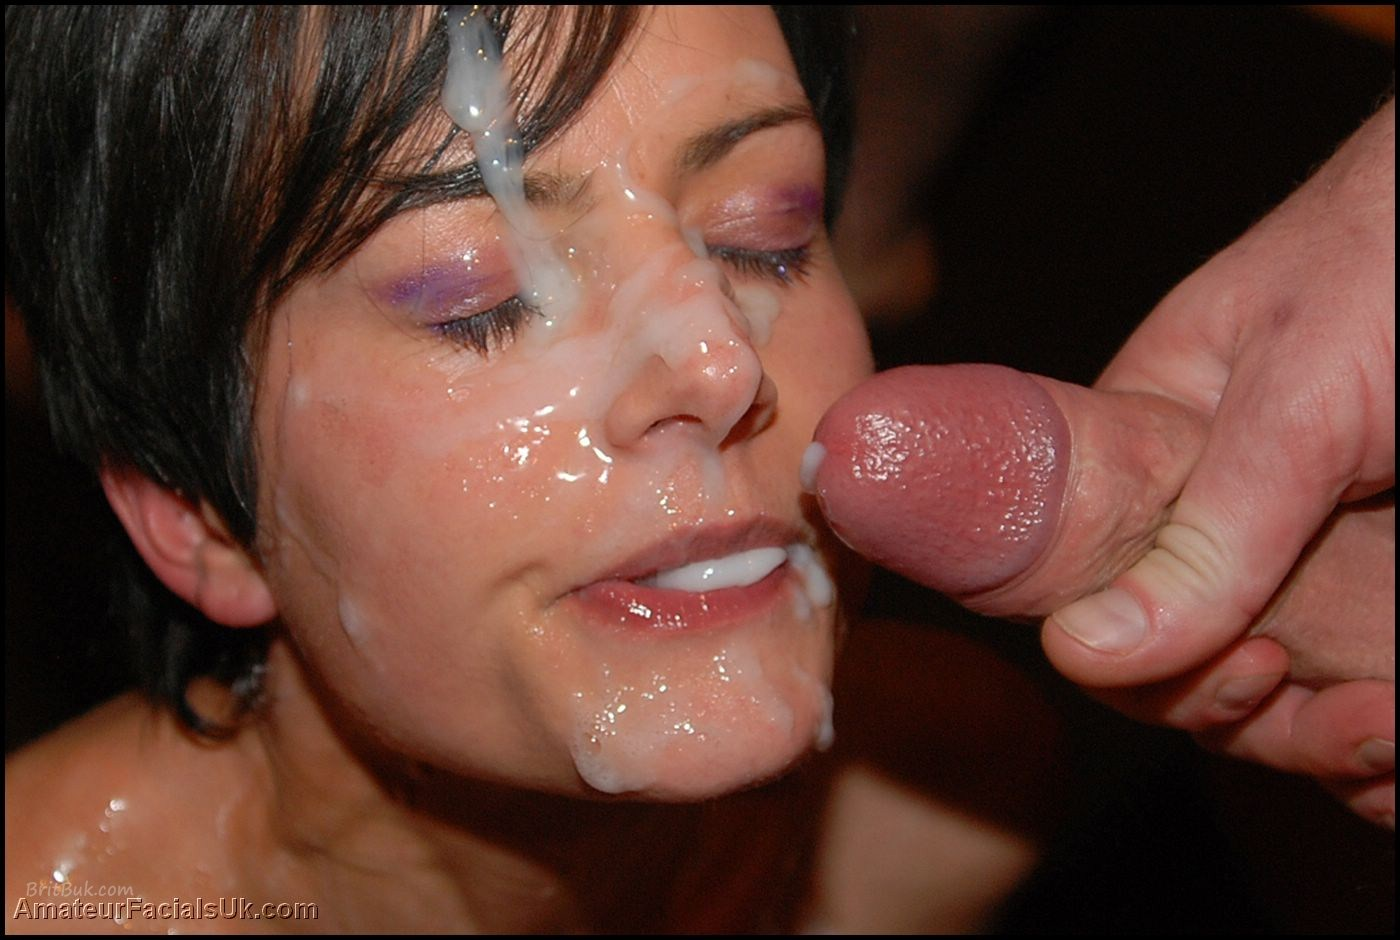 Very grateful Amateur facial cumshot